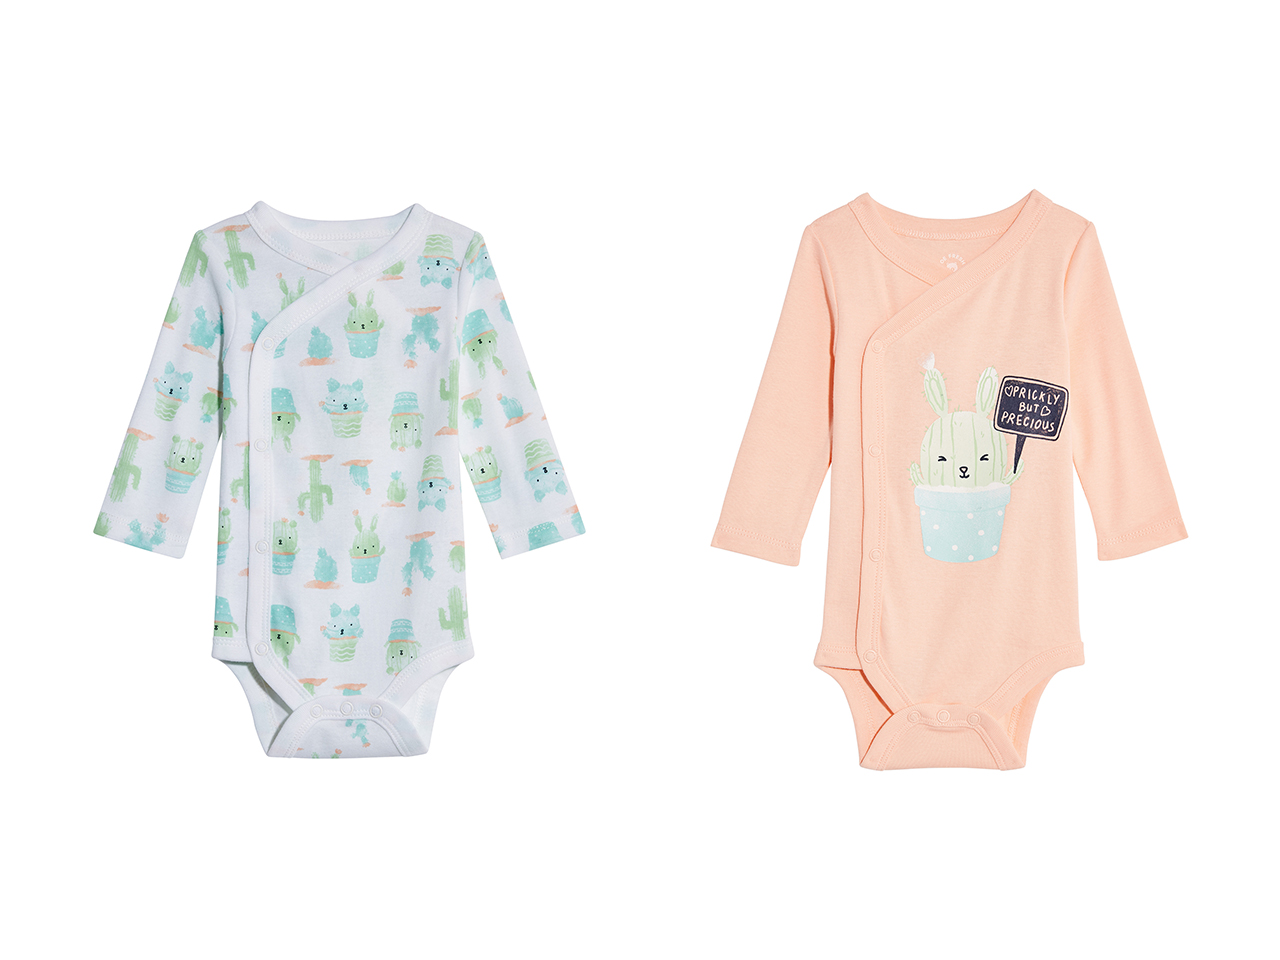 7 affordable (but stylish) baby clothing brands